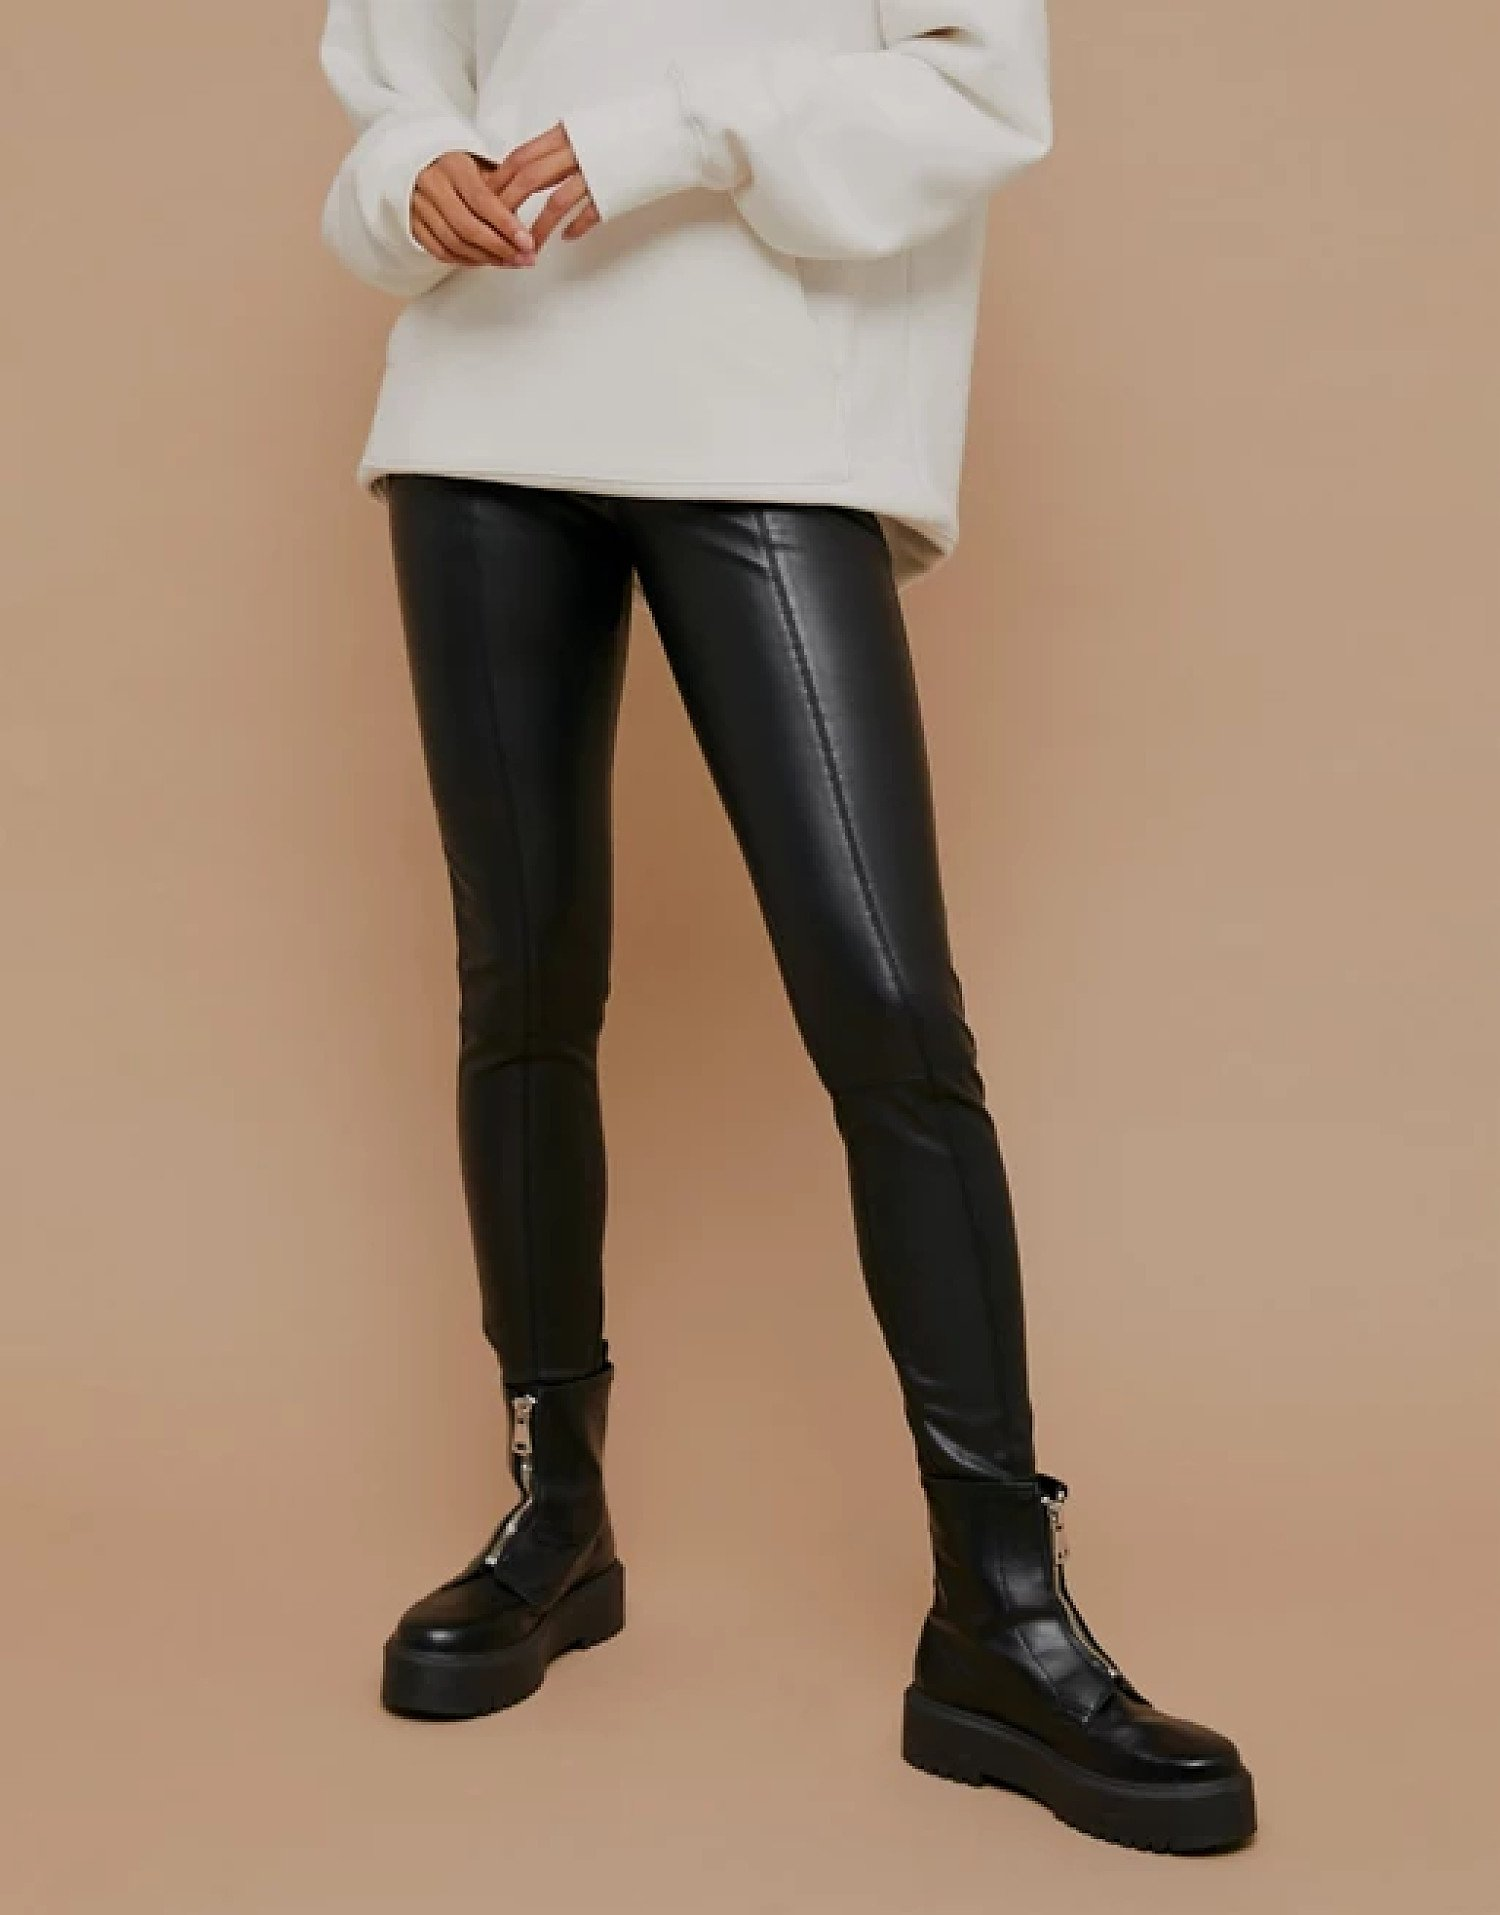 TOPSHOP TO ASOS - Topshop faux leather straight leg trousers in black £35.99!